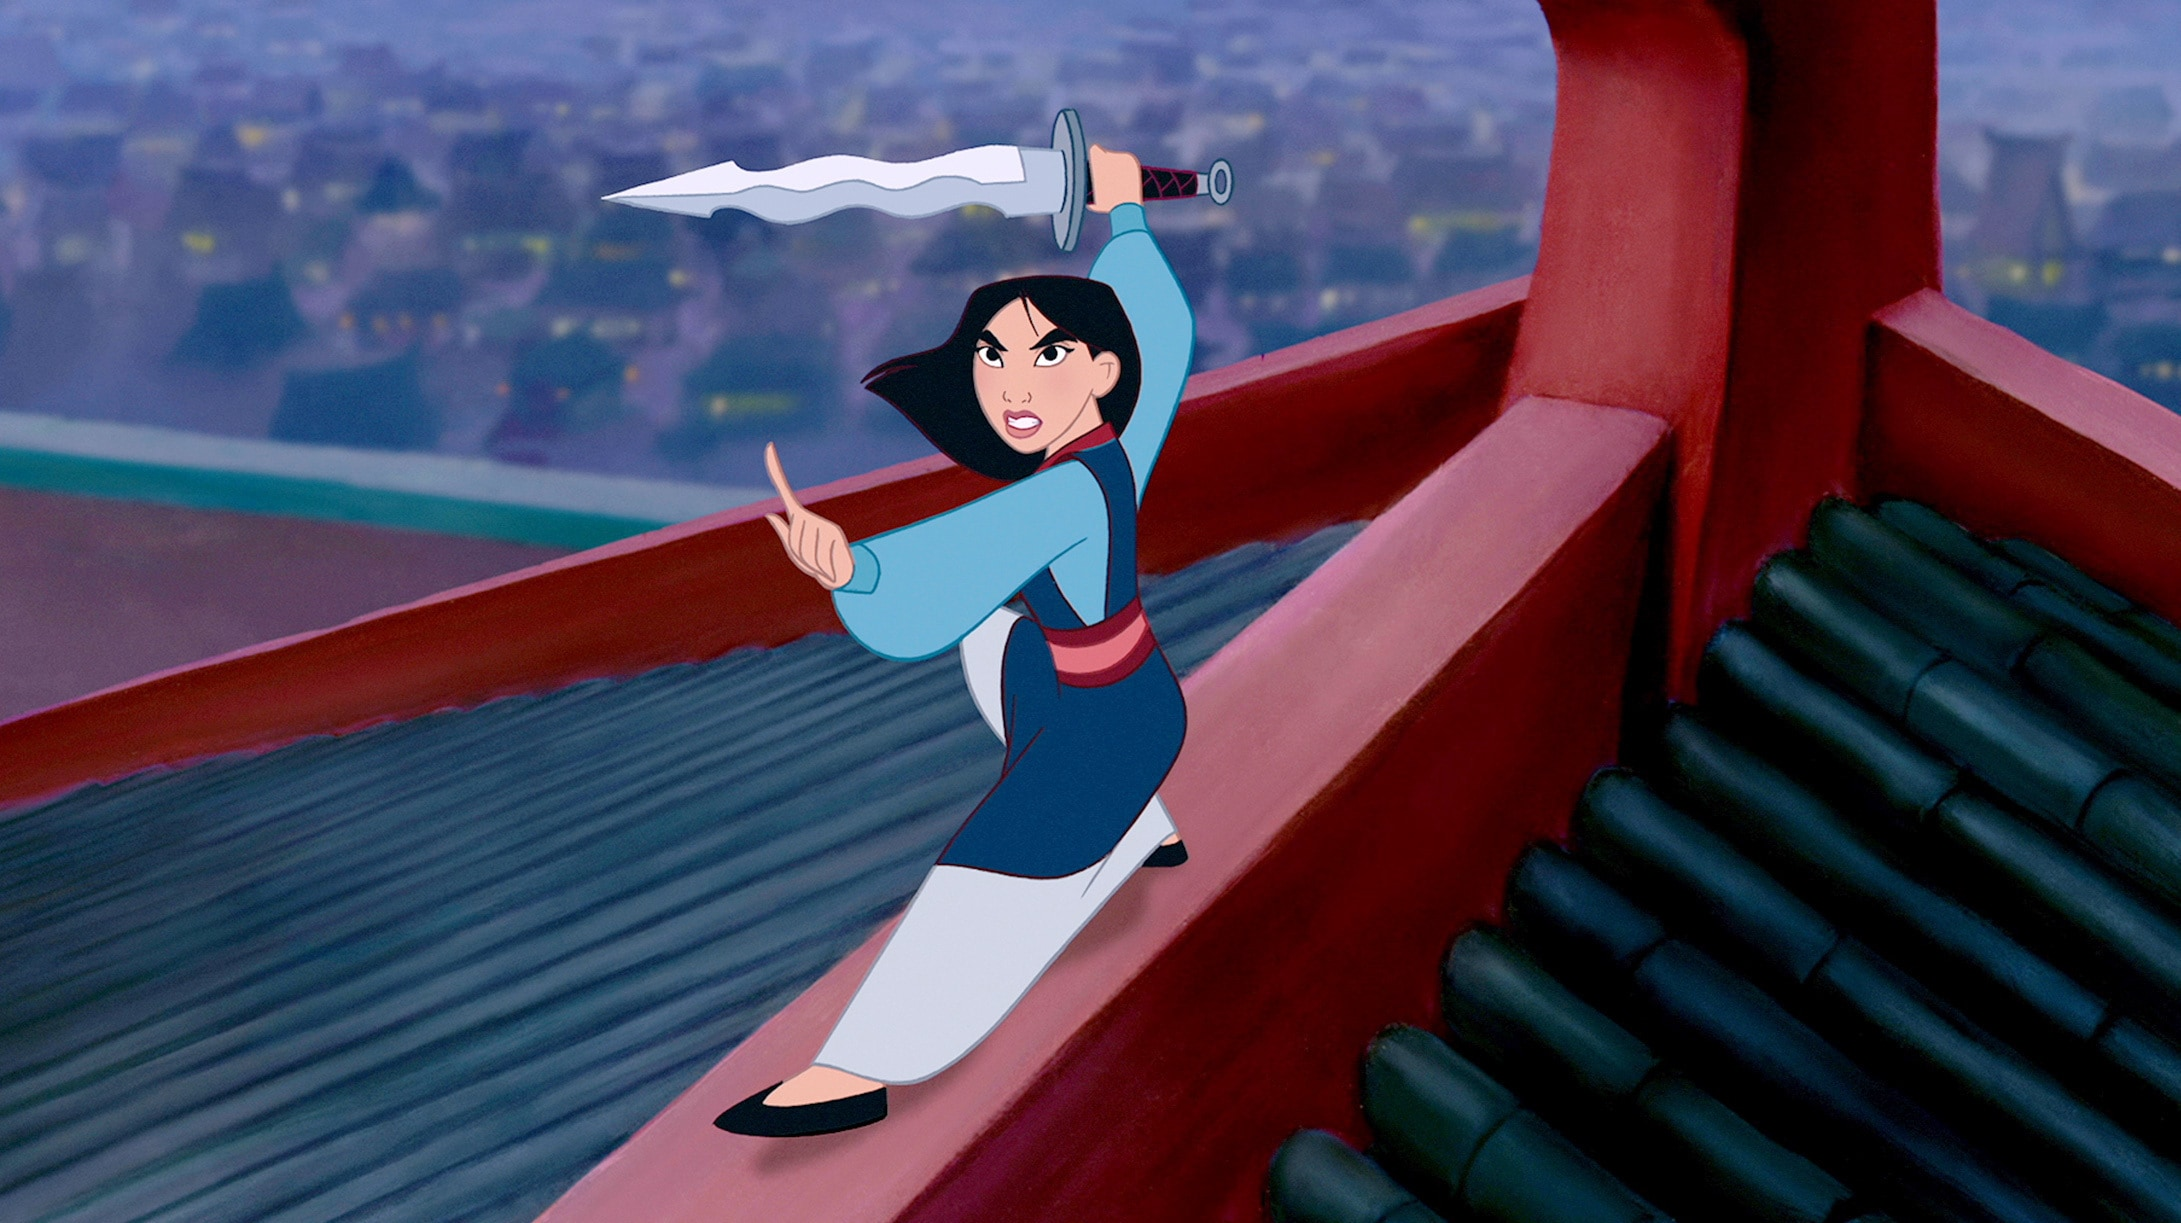 Mulan ready to fight and defeat Shan-Yu